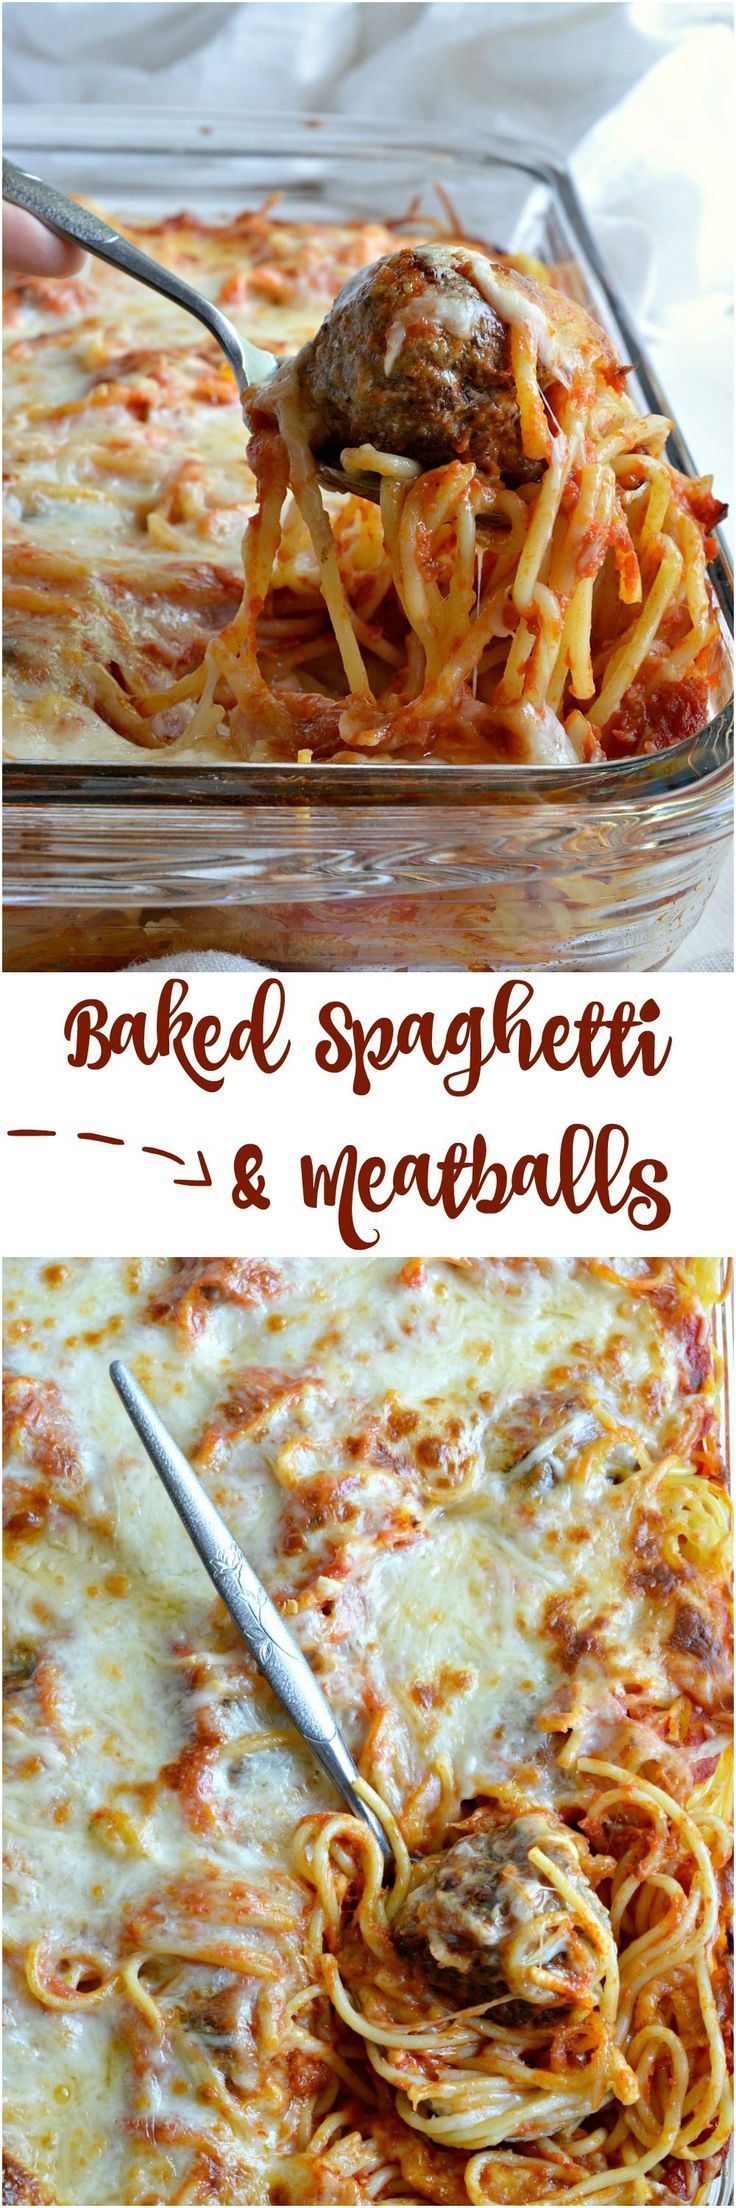 Cheesy Baked Spaghetti and Meatballs is a new fun way to serve this family favorite comfort food! Add this dinner recipe to your menu for spaghetti with a twist. A simple casserole made with layers of pasta, marinara sauce, cheese and meatballs. #ad